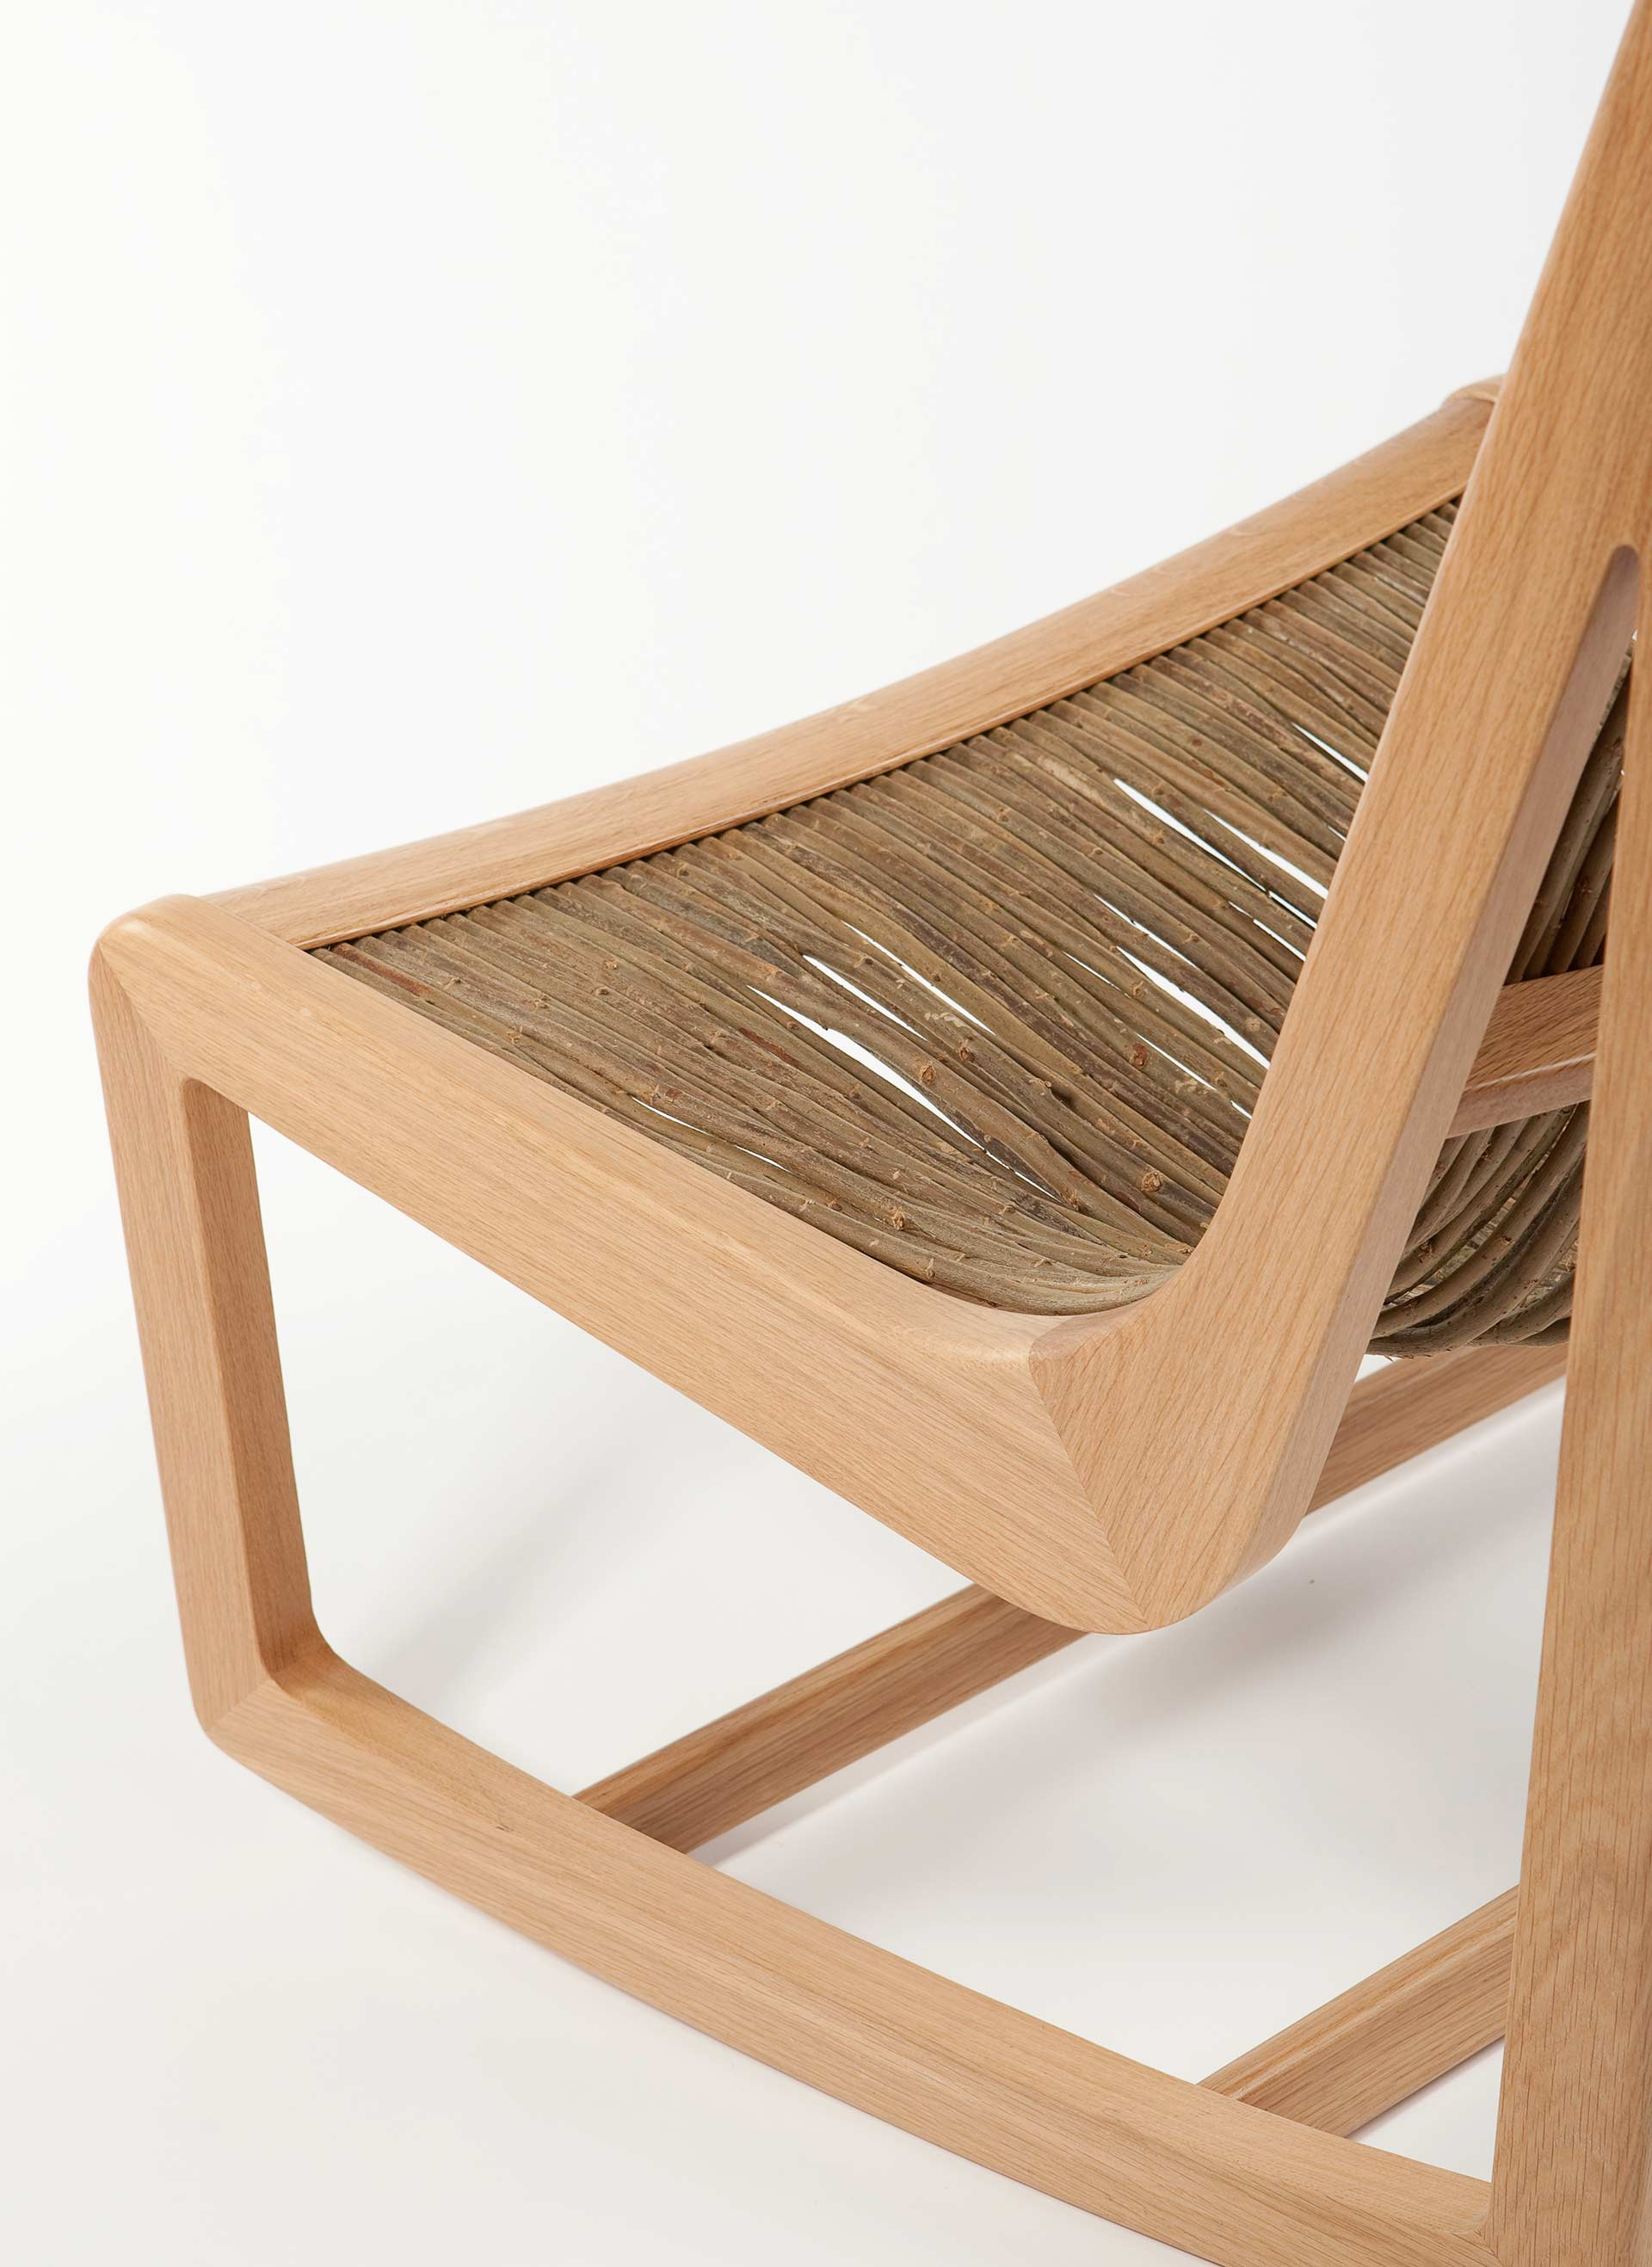 Willow chair detail made by Boex